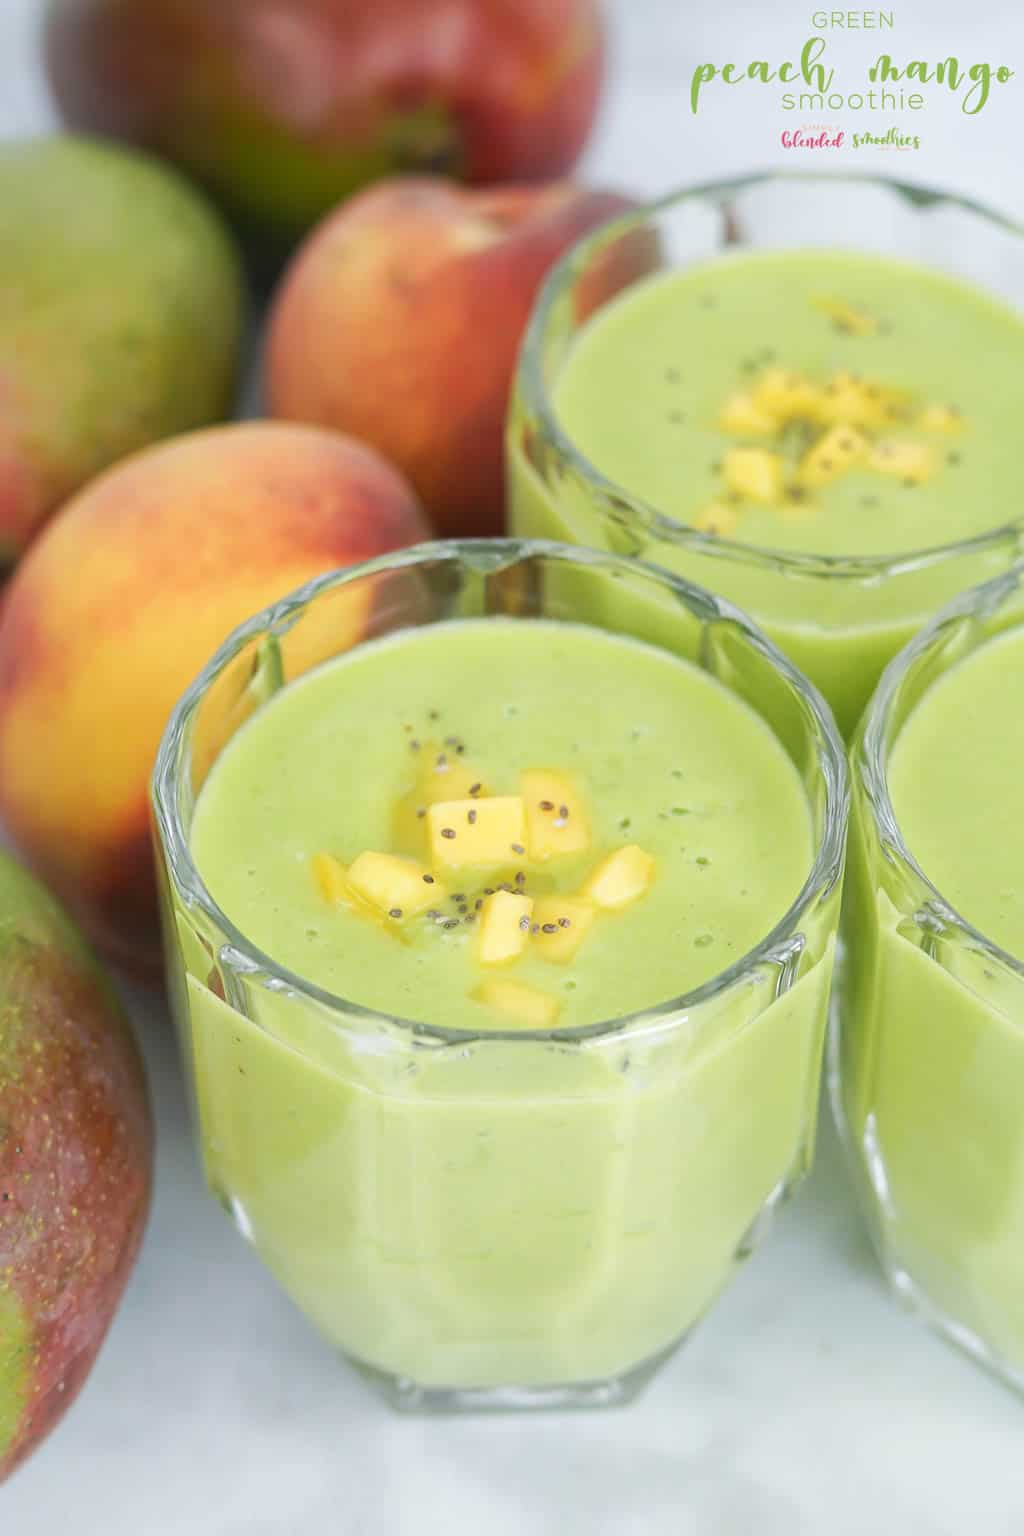 Easy and Delicious Green Peach Mango Smoothie Recipe